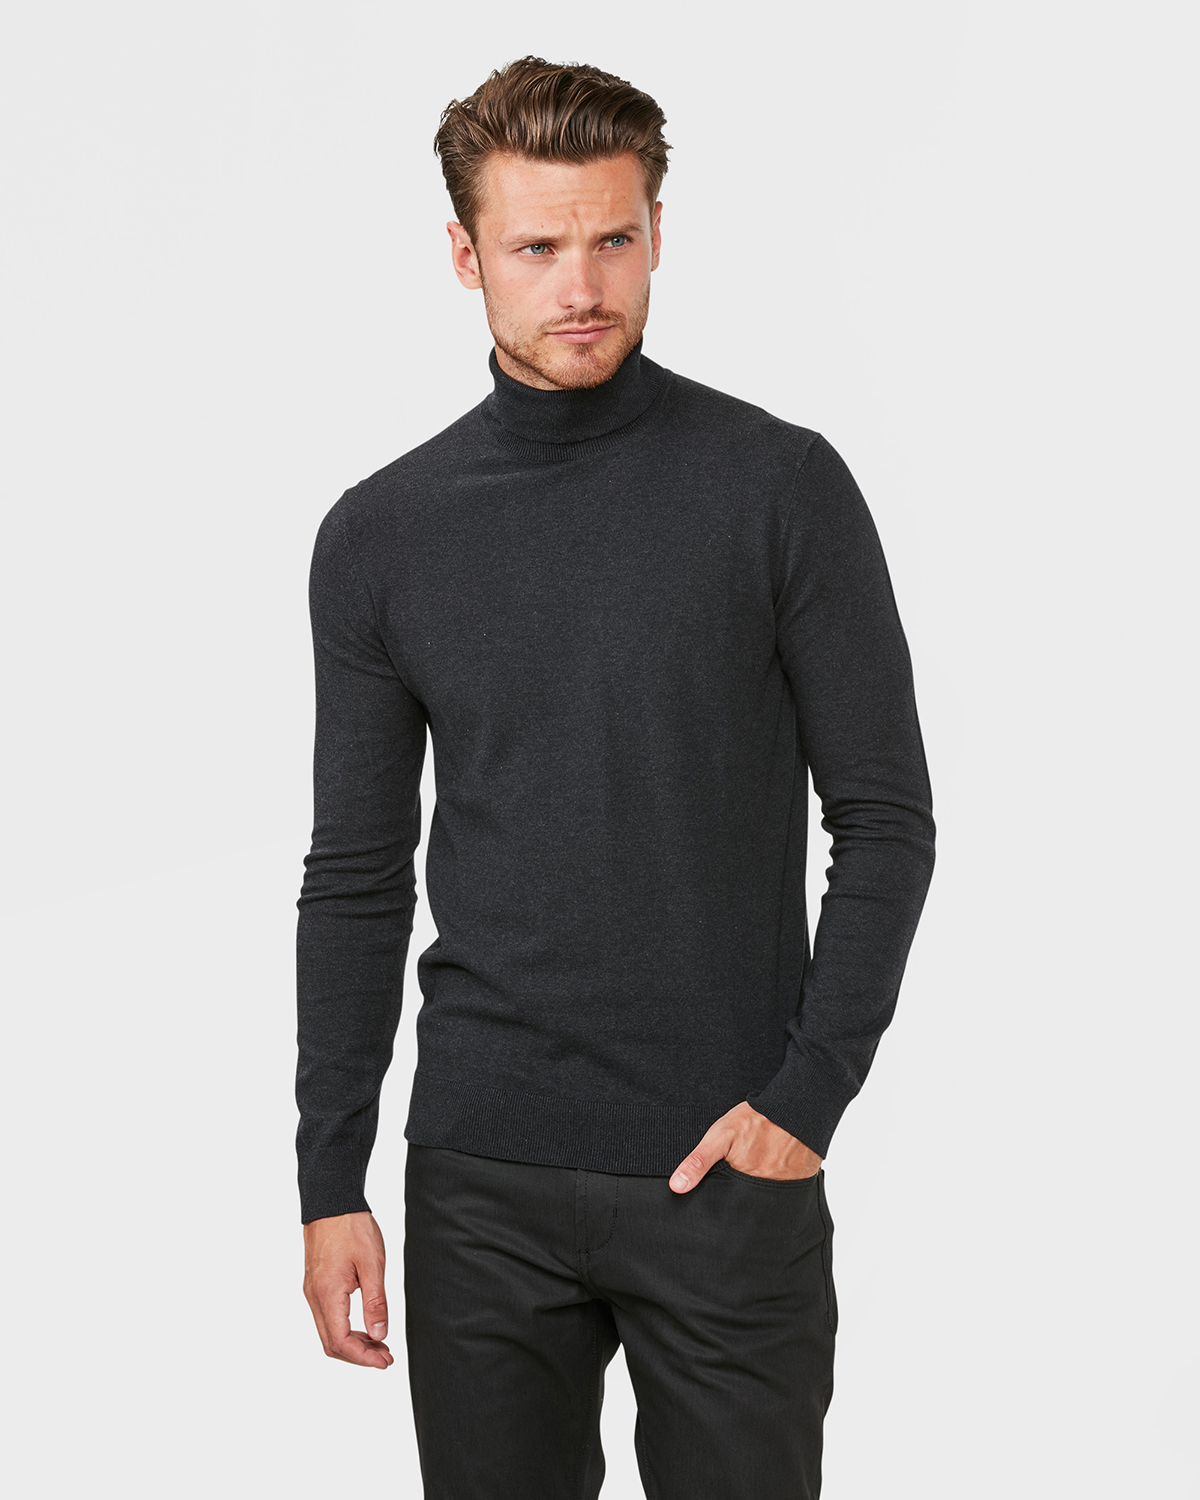 magasin d'usine 8215f 3ca5c PULL A COL ROULE HOMME | 79422697 - WE Fashion